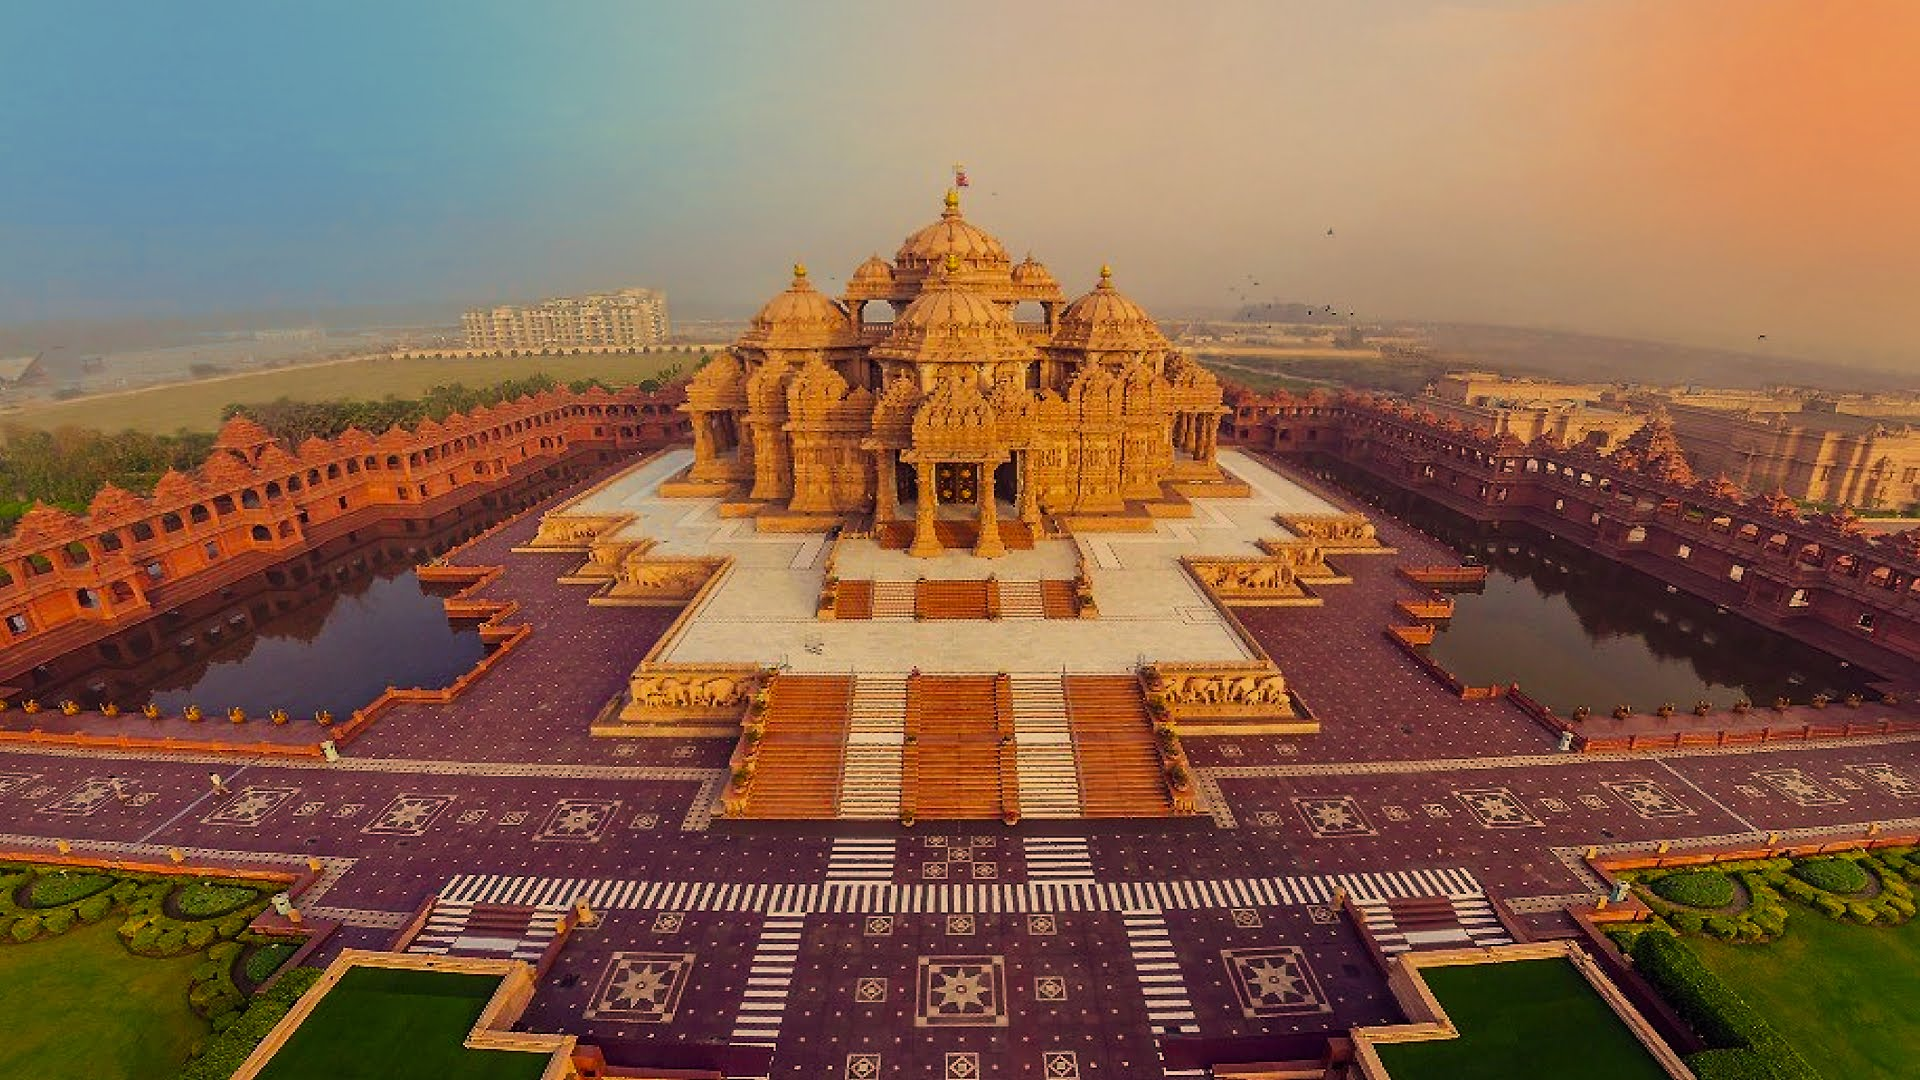 Akshardham all about india about the full name of akshardham is swaminarayan akshardham complex and it is one of the most popular temples in india which is the major source of altavistaventures Gallery